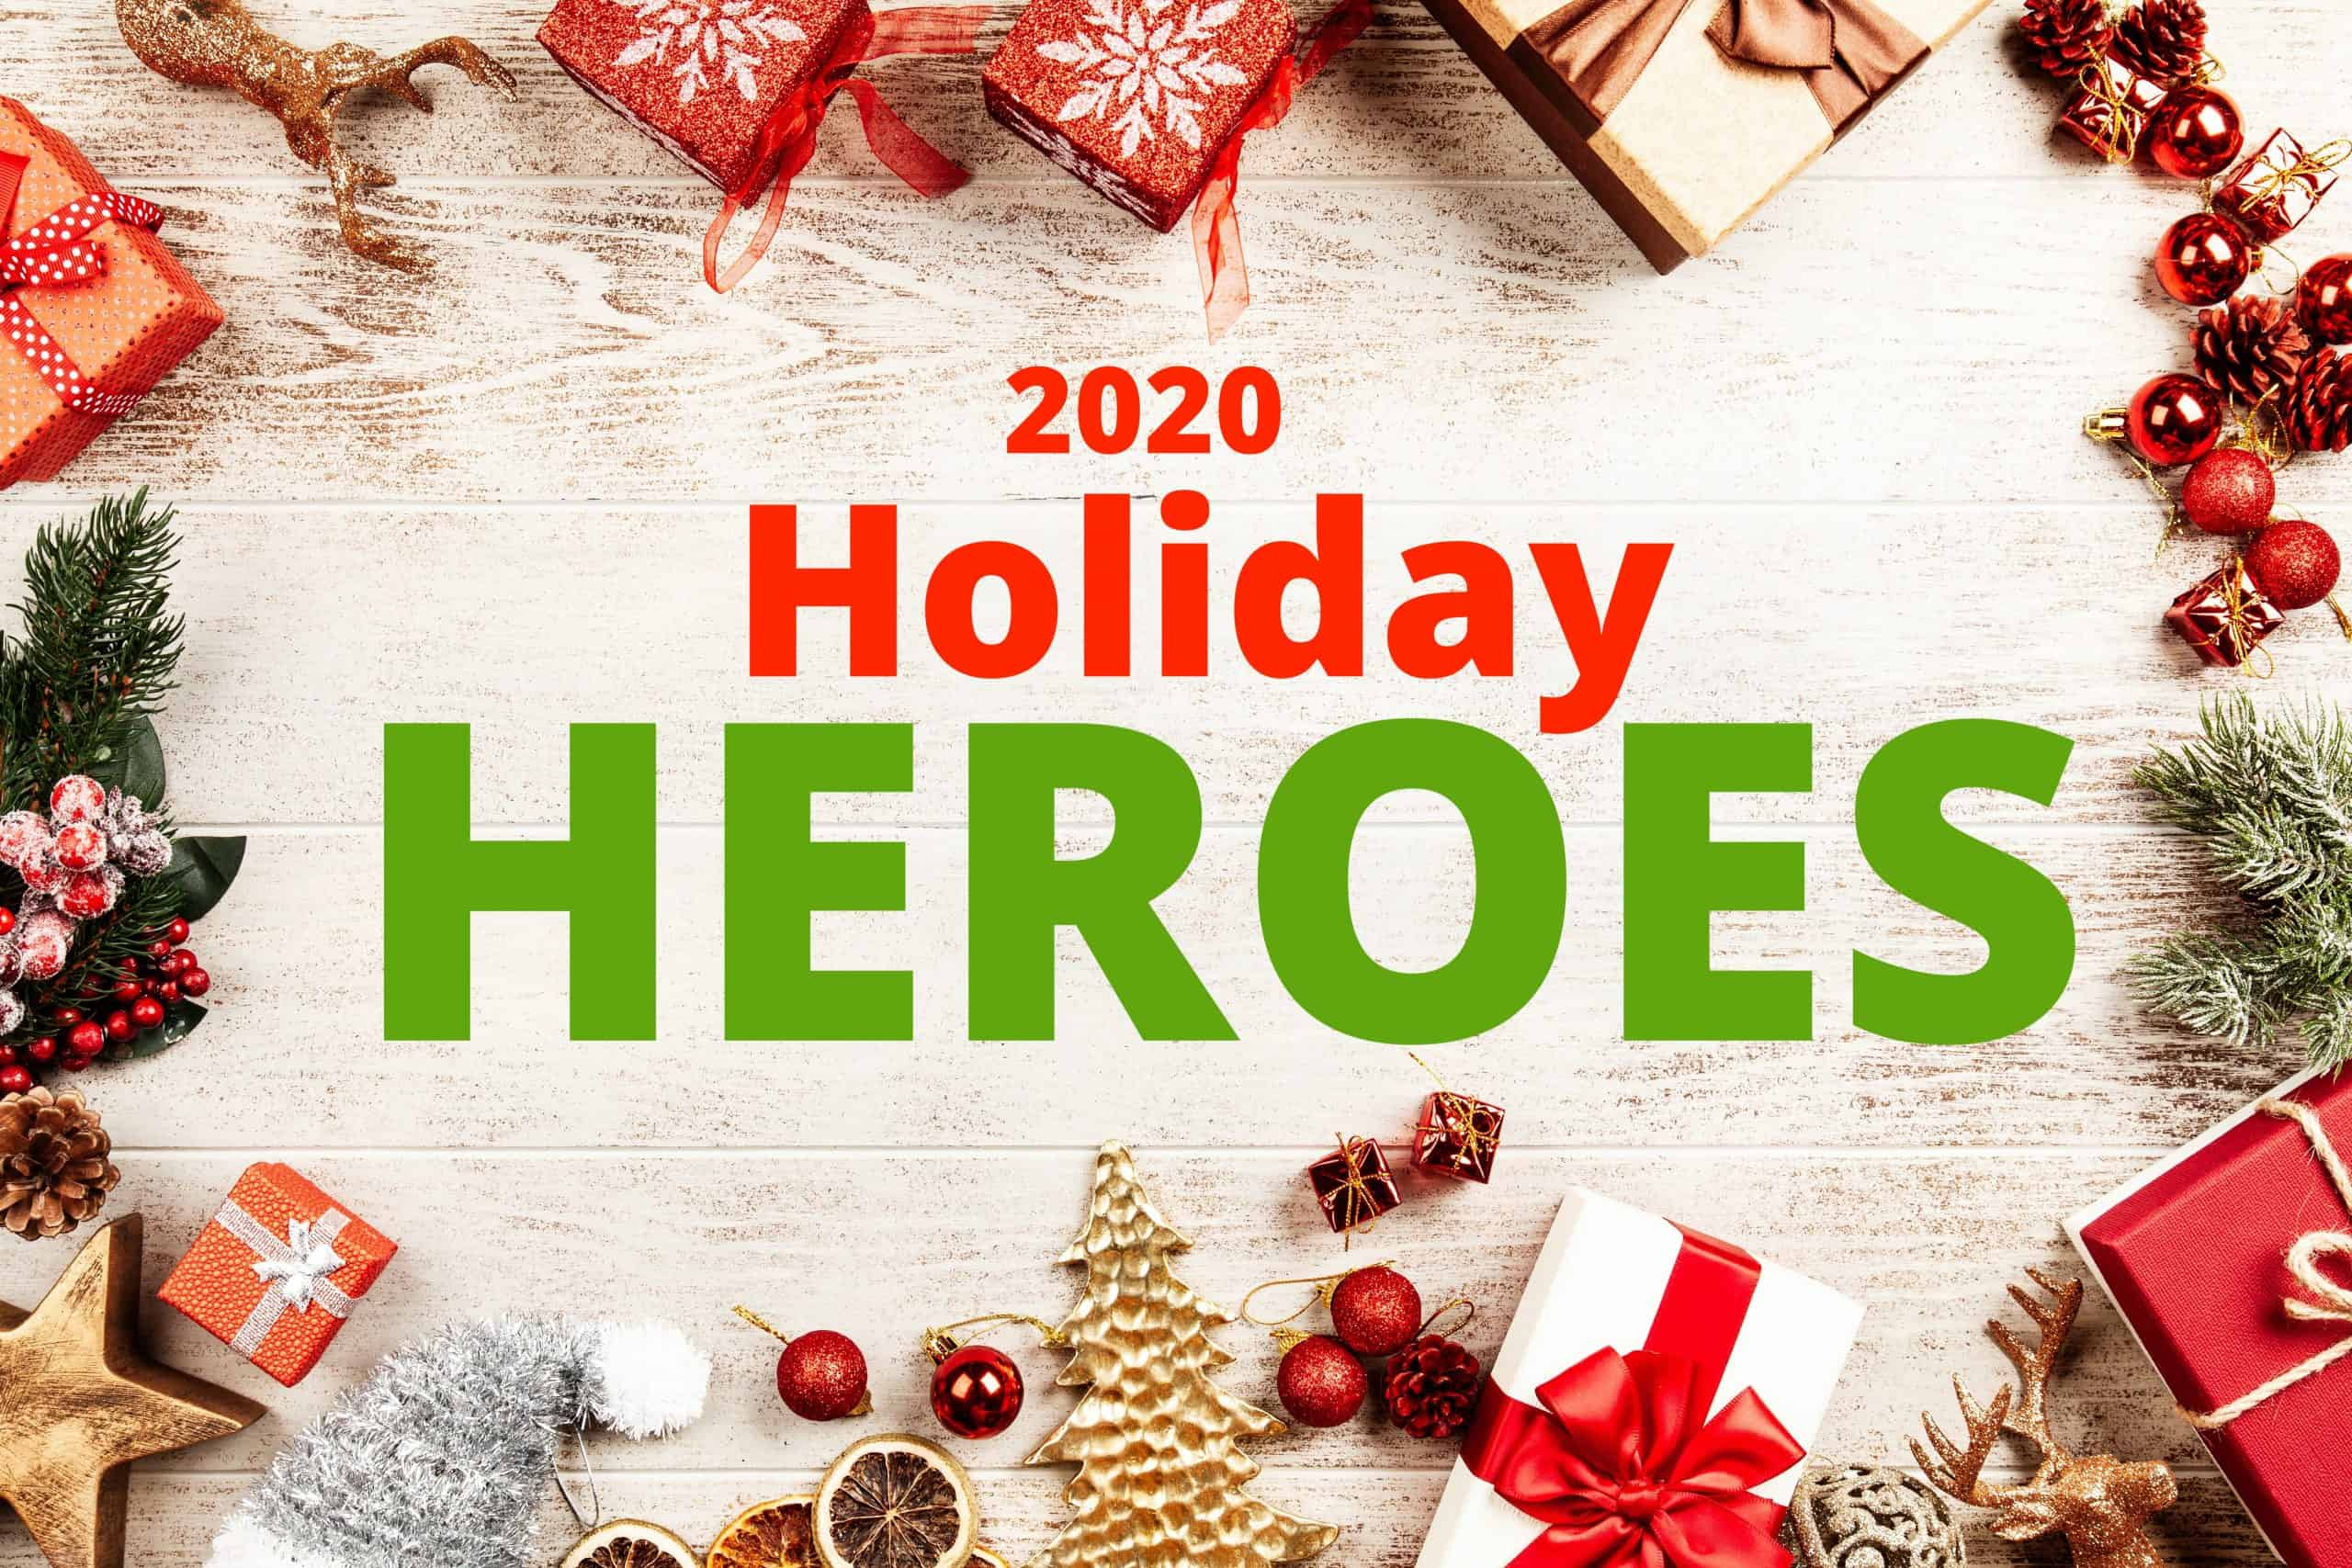 Celebrating our holiday heroes this winter